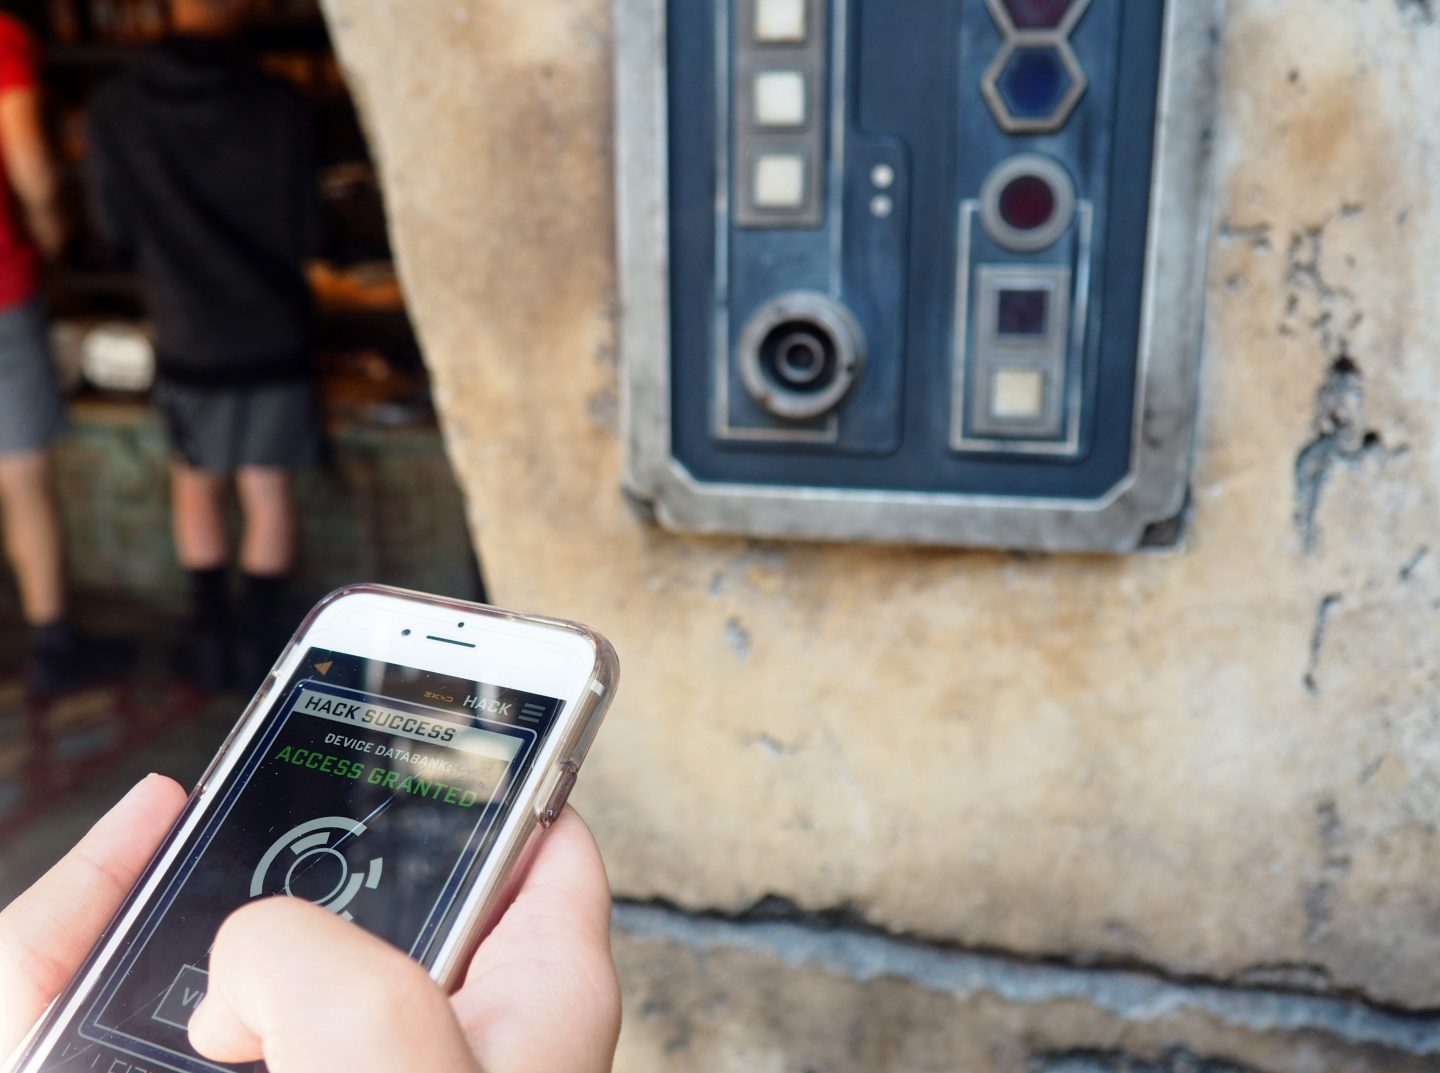 Star Wars Galaxy's Edge game in the disney Play app